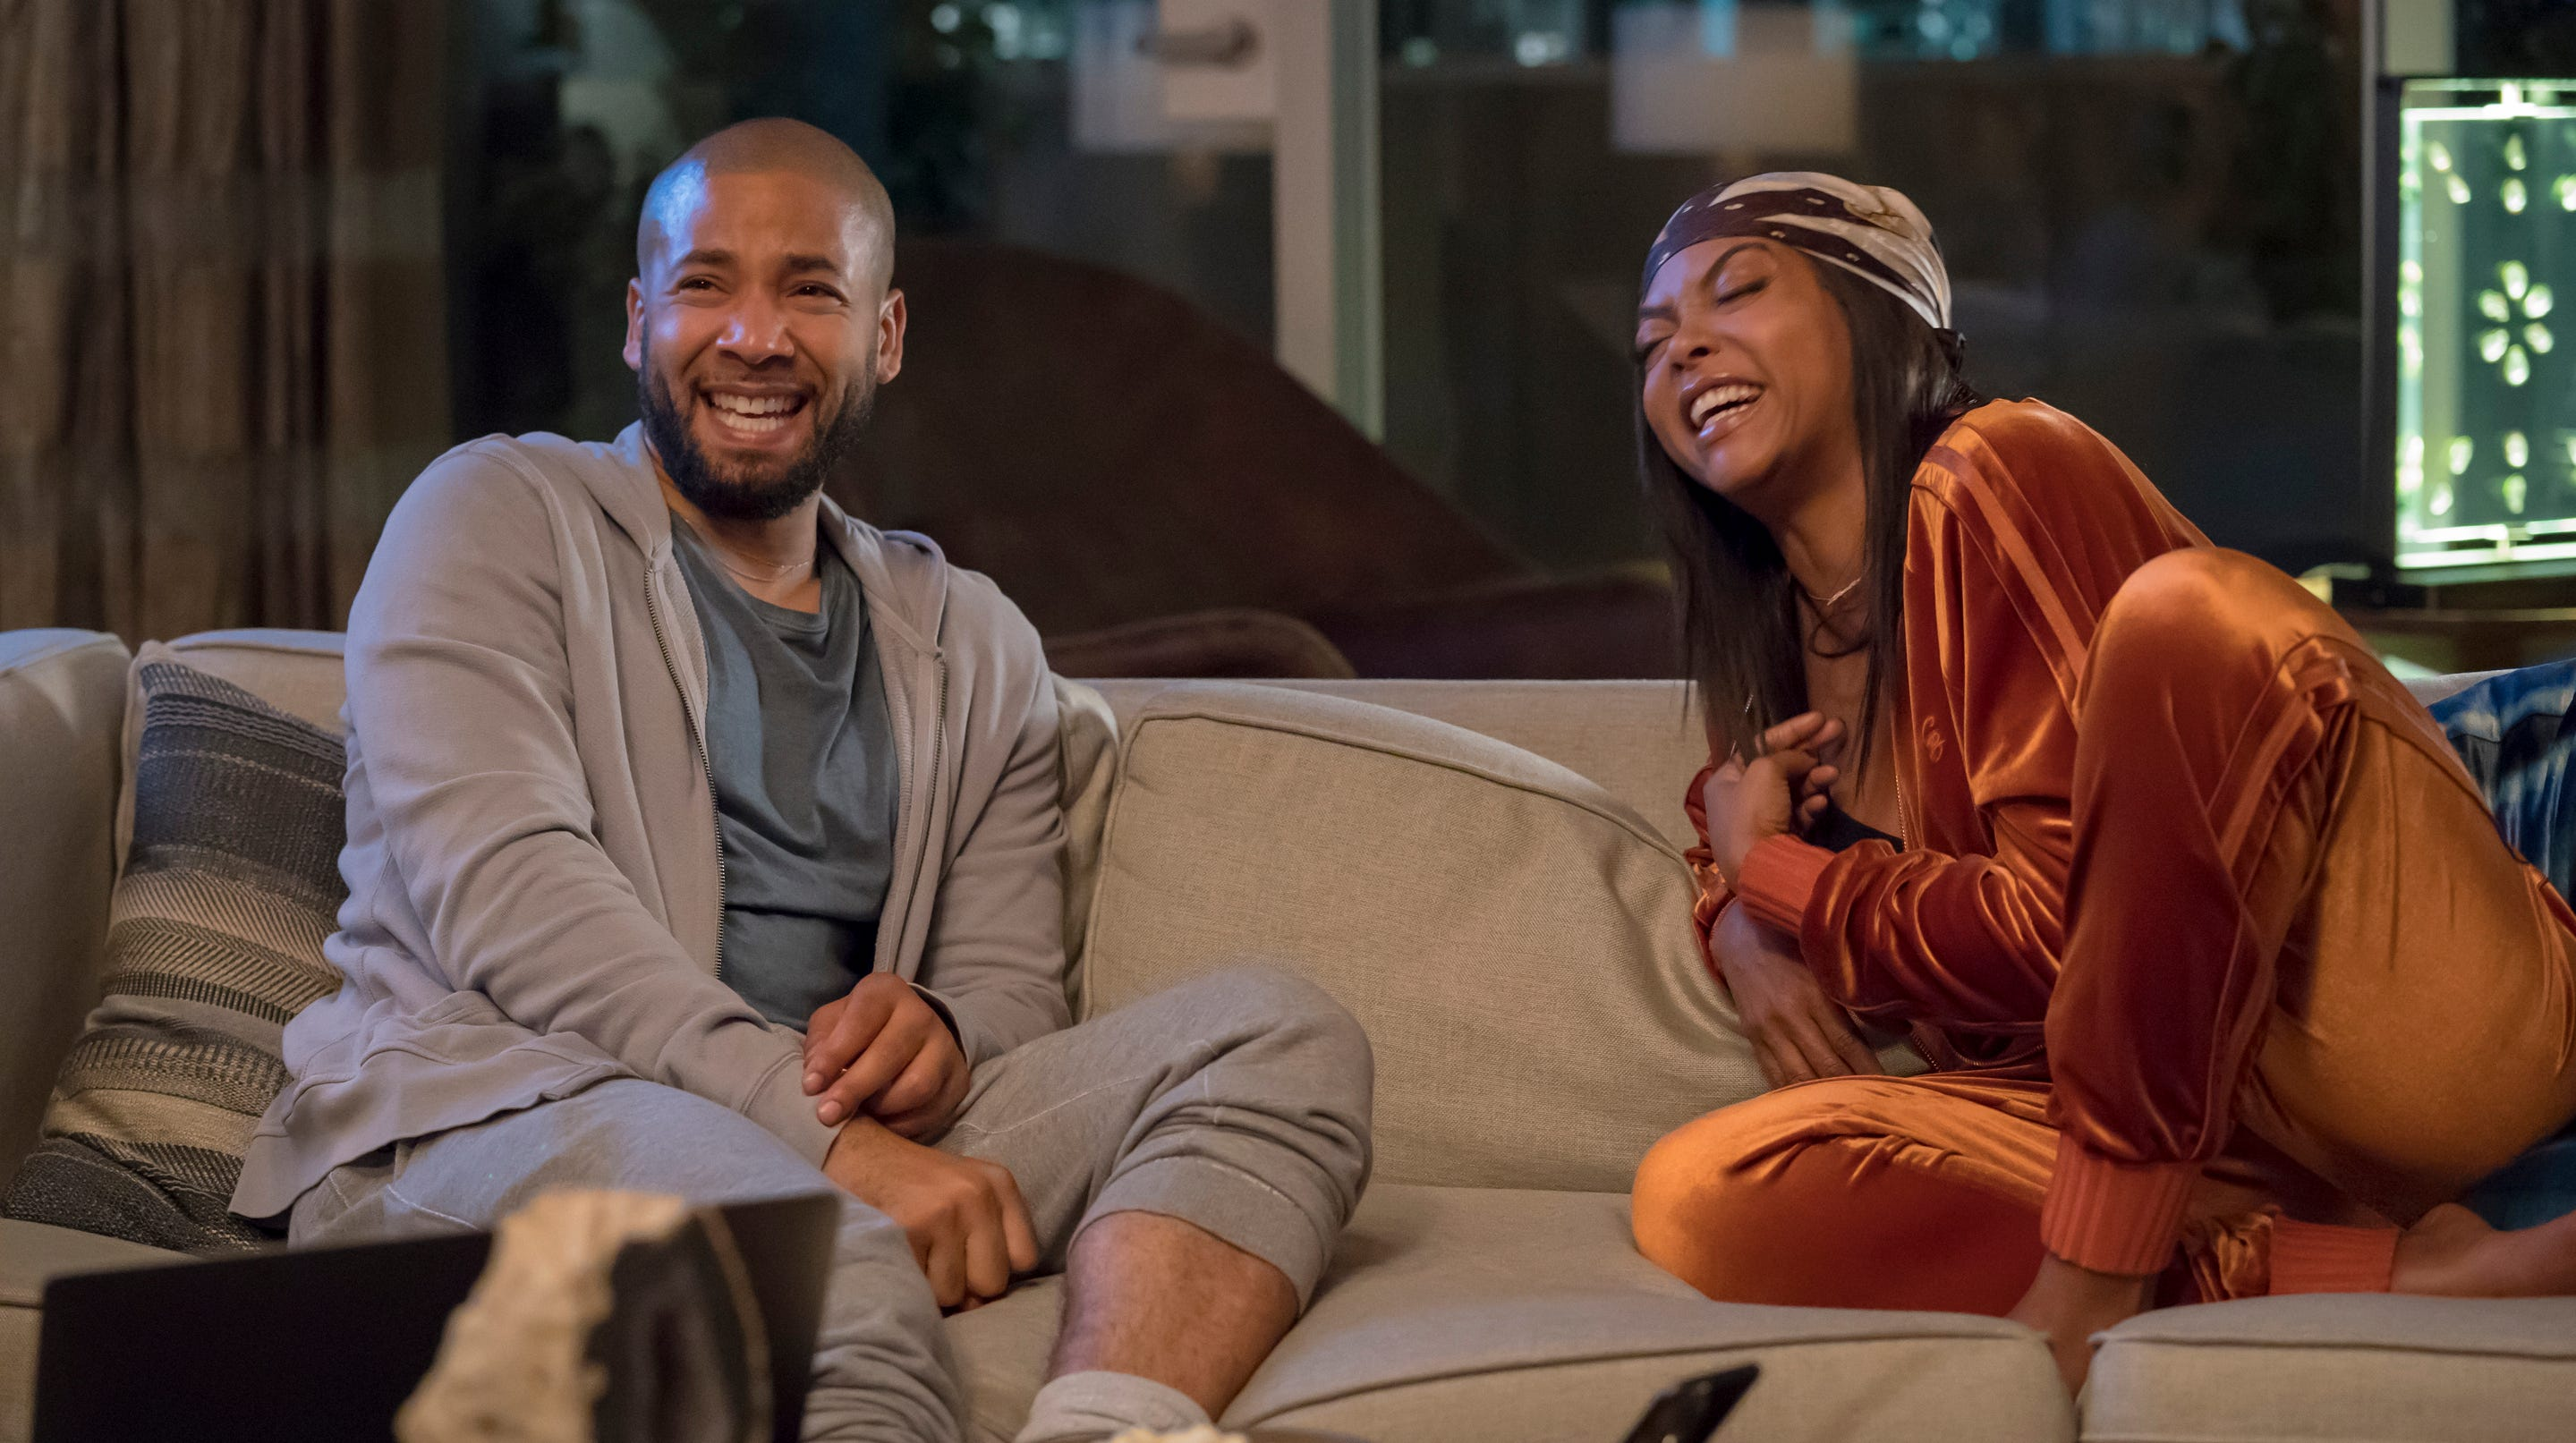 """This image released by Fox shows Jussie Smollett, left, and Taraji P. Henson in a scene from the """"The Depth of Grief"""" episode of """"Empire,"""" originally airing on Oct. 31, 2018. Smollett's co-starring role in """"Empire"""" may end up being the pinnacle of his career, industry observers and insiders said as the actor faces criminal charges that he faked a hate crime against himself. (Chuck Hodes/FOX via AP) ORG XMIT: NYET574"""